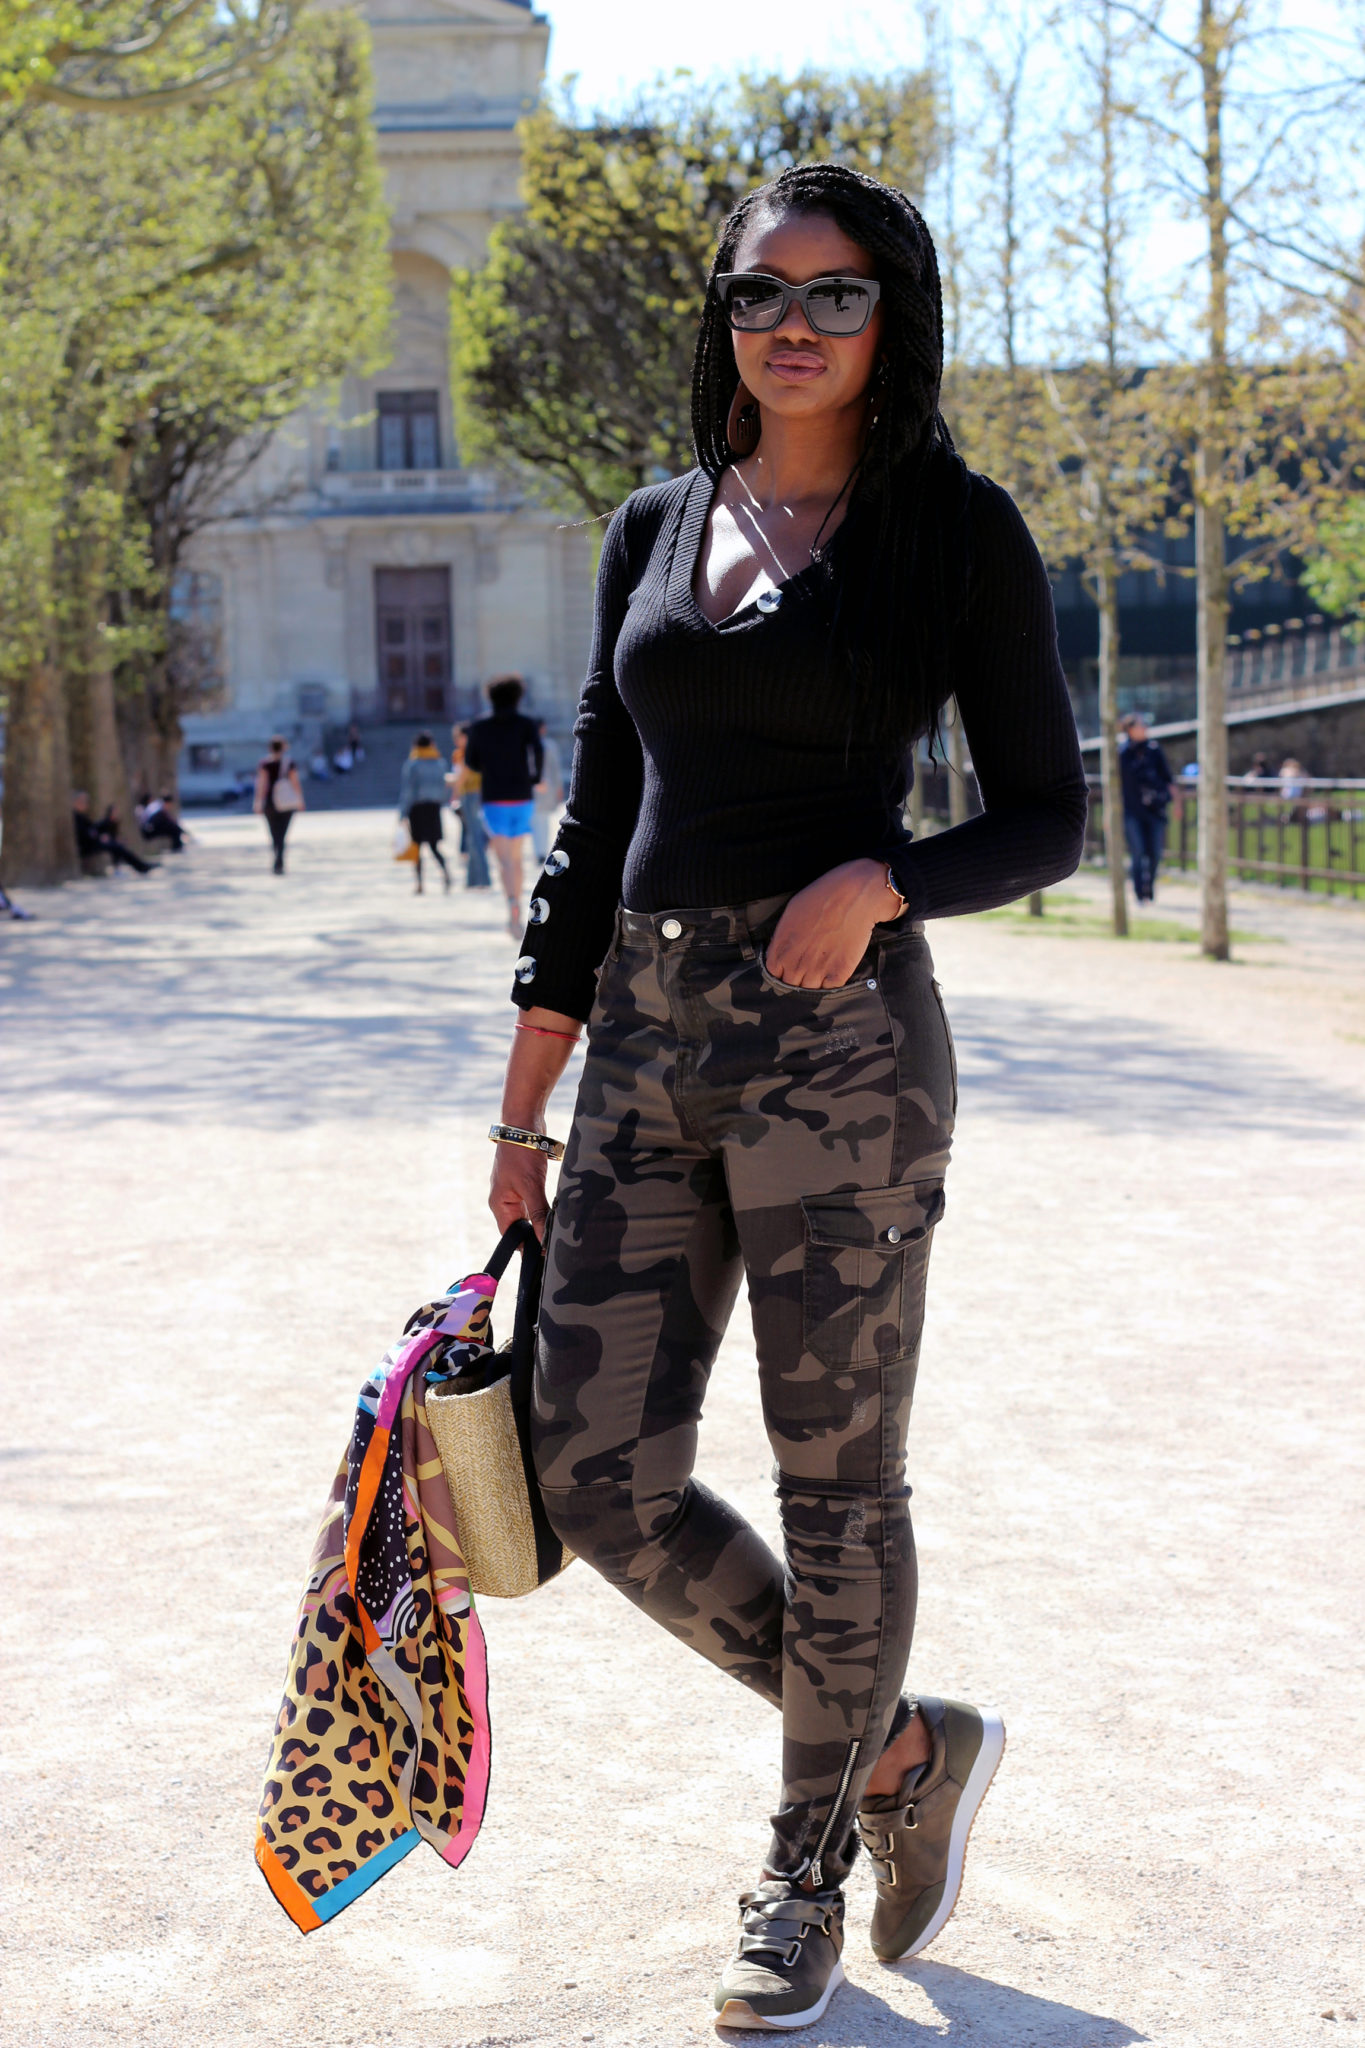 camouflage pantalon cargo militaire camo in the city 12